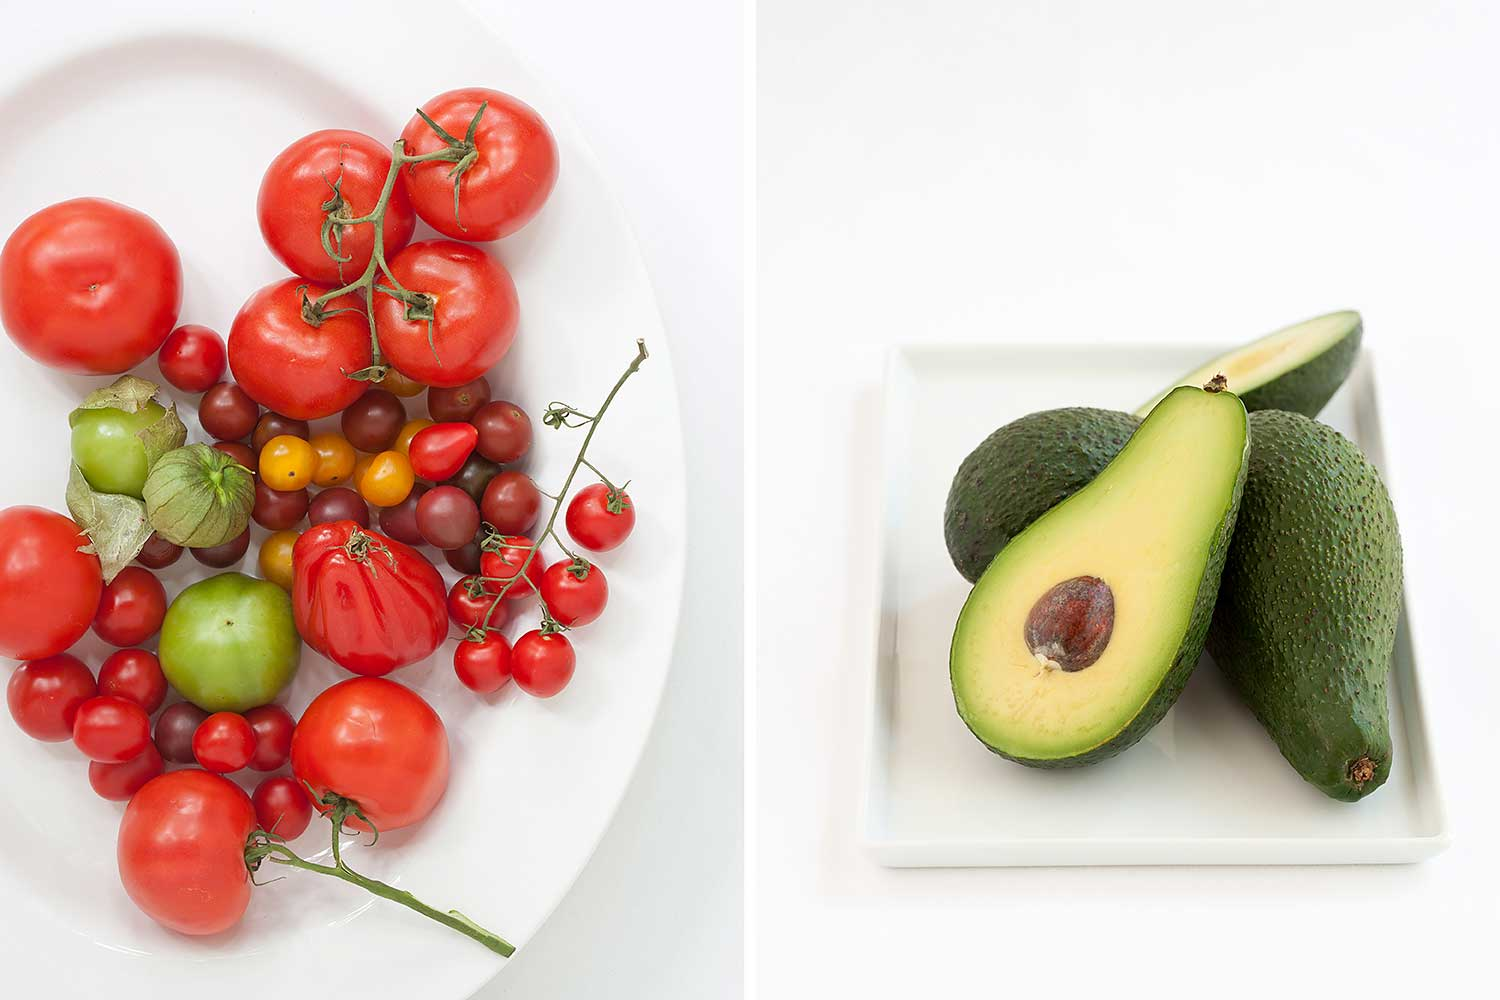 Tomatoes and avocados